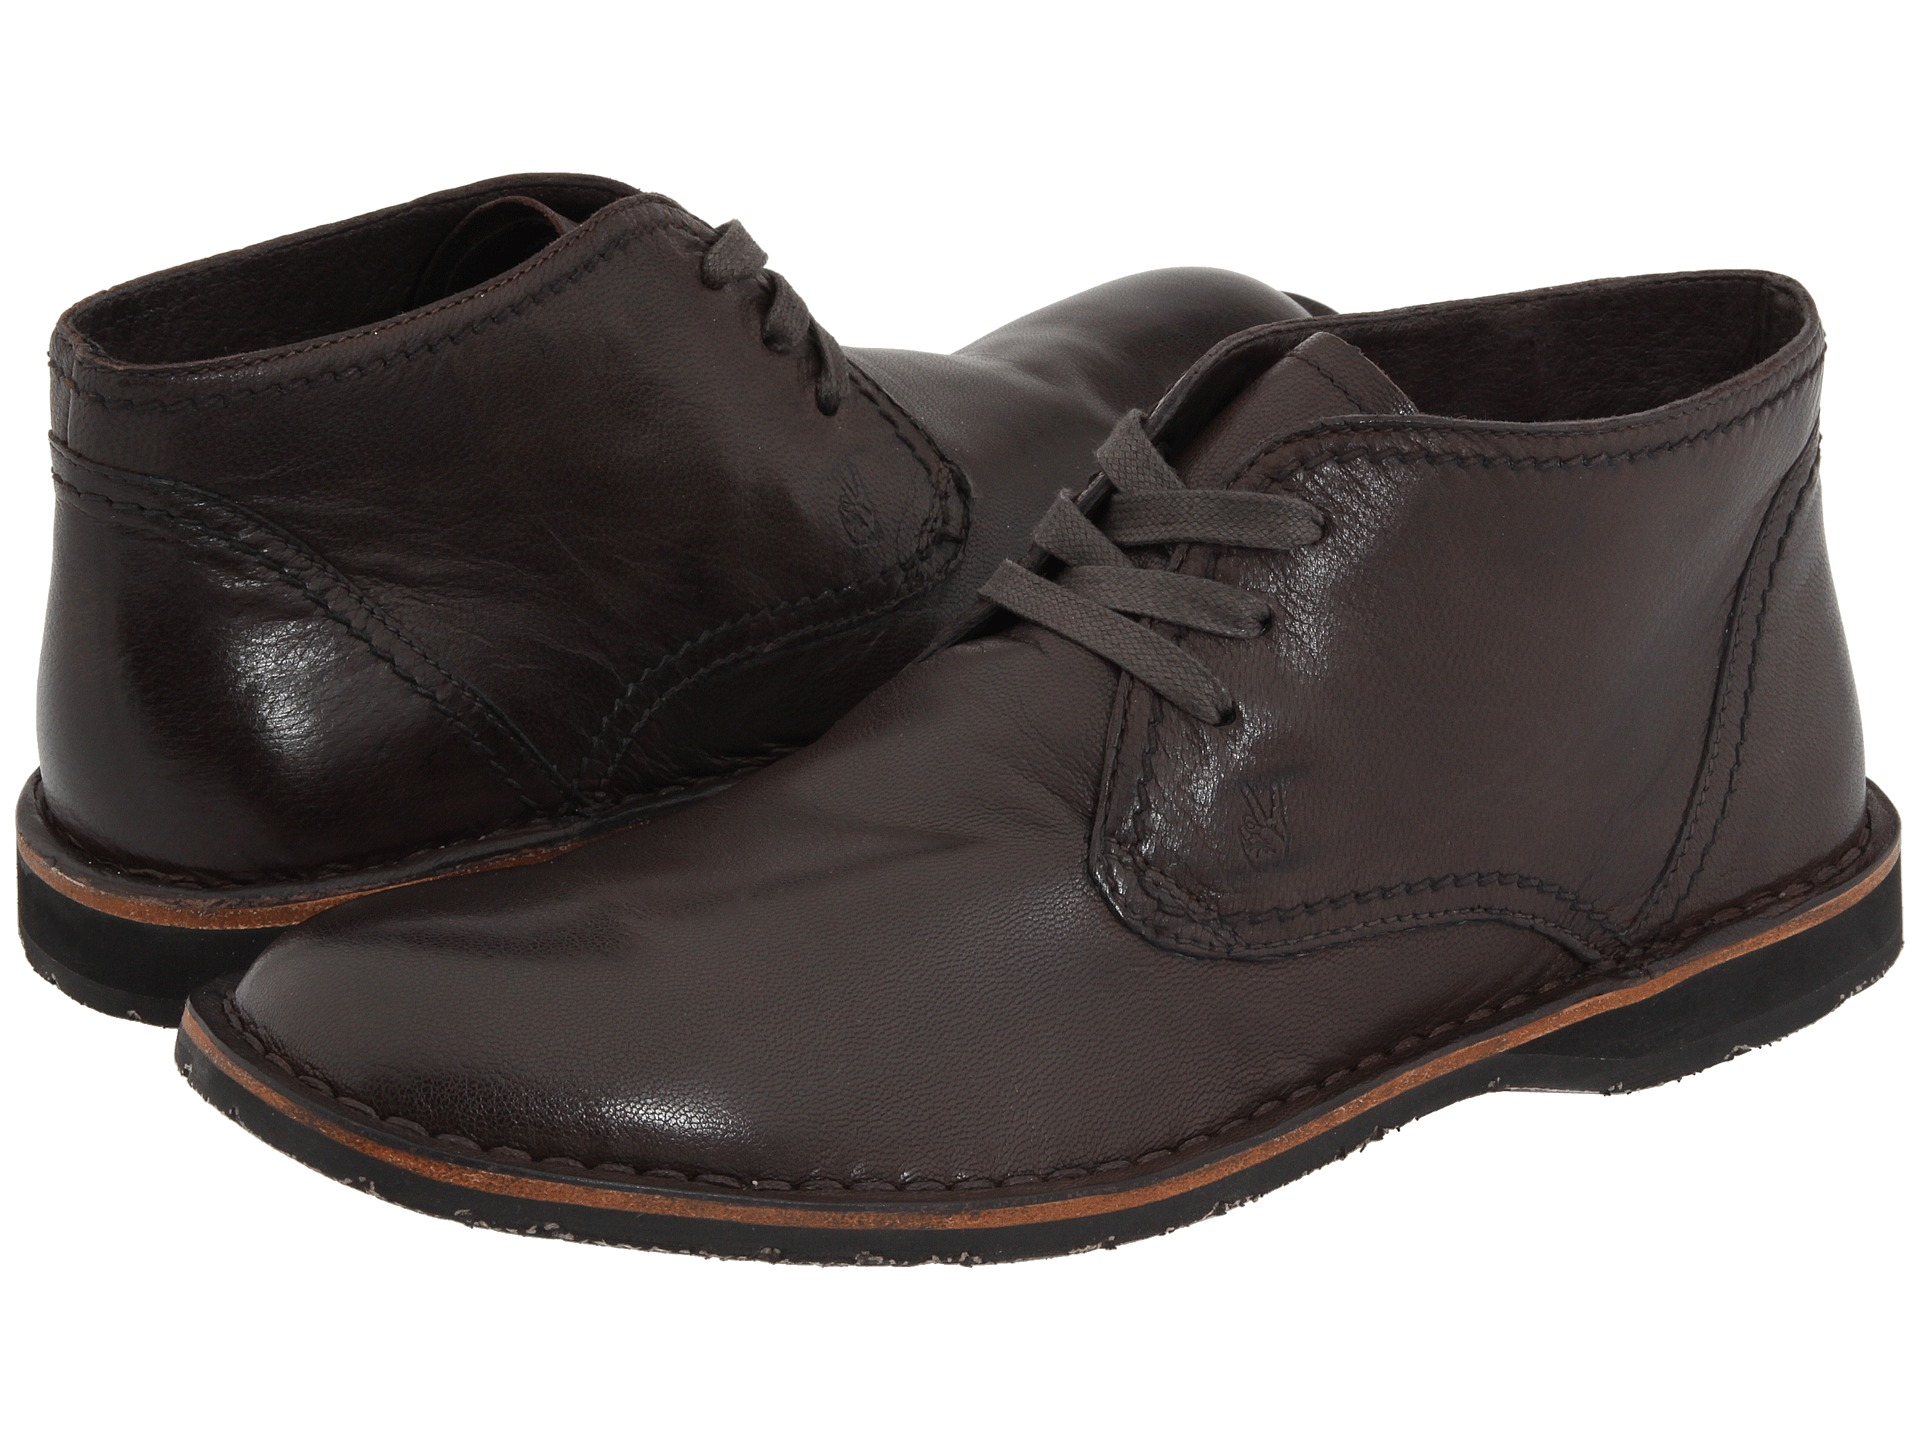 Clarks Shoes Whistle